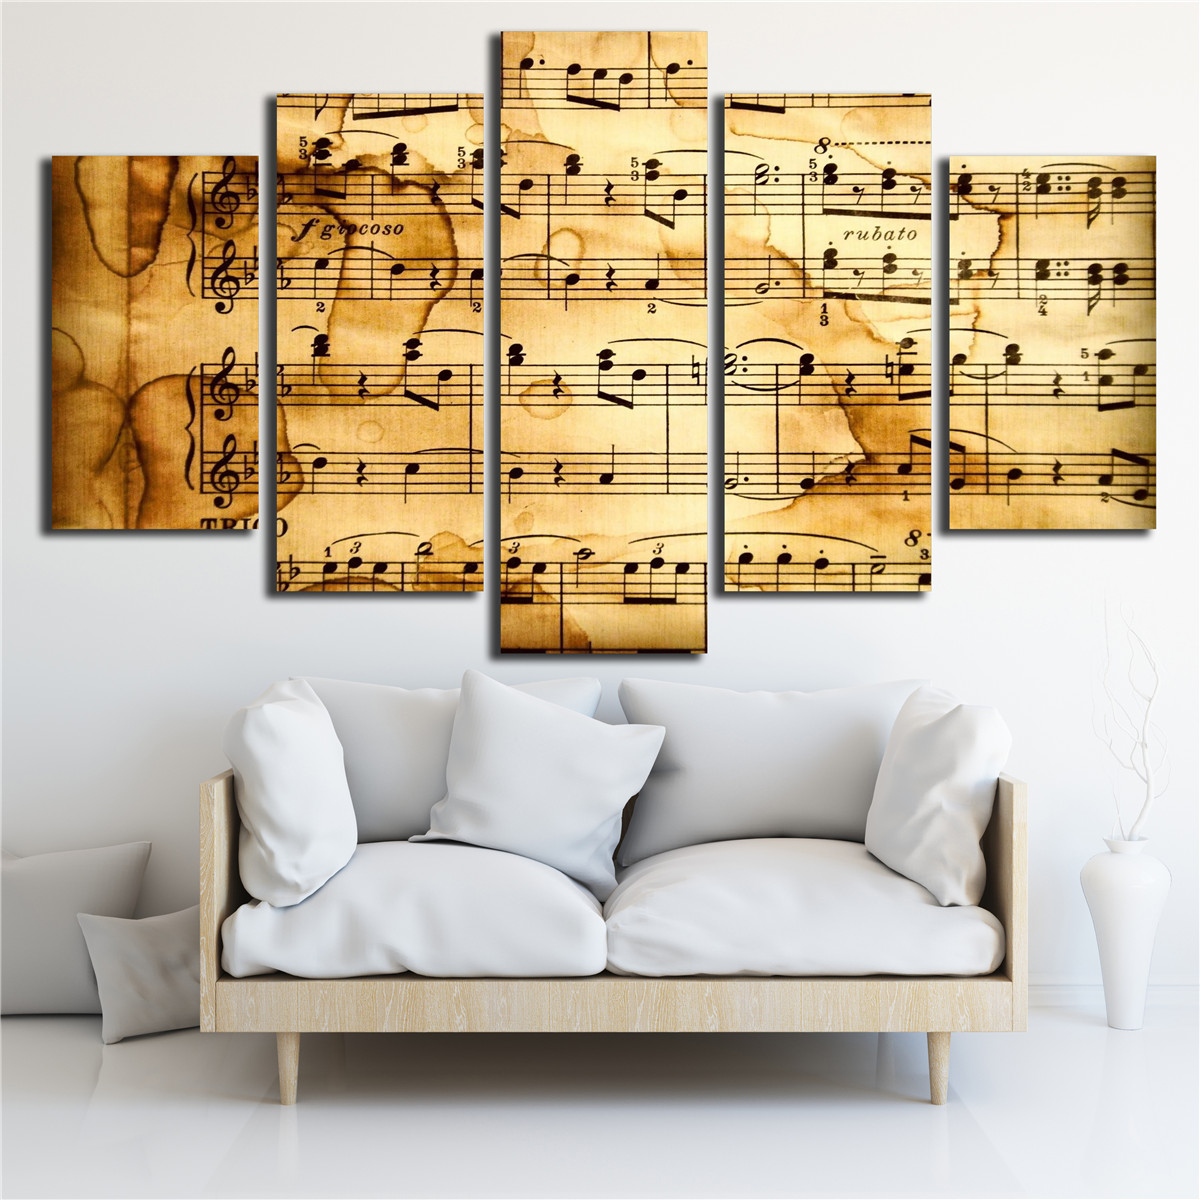 Buy acoustic art and get free shipping on AliExpress.com